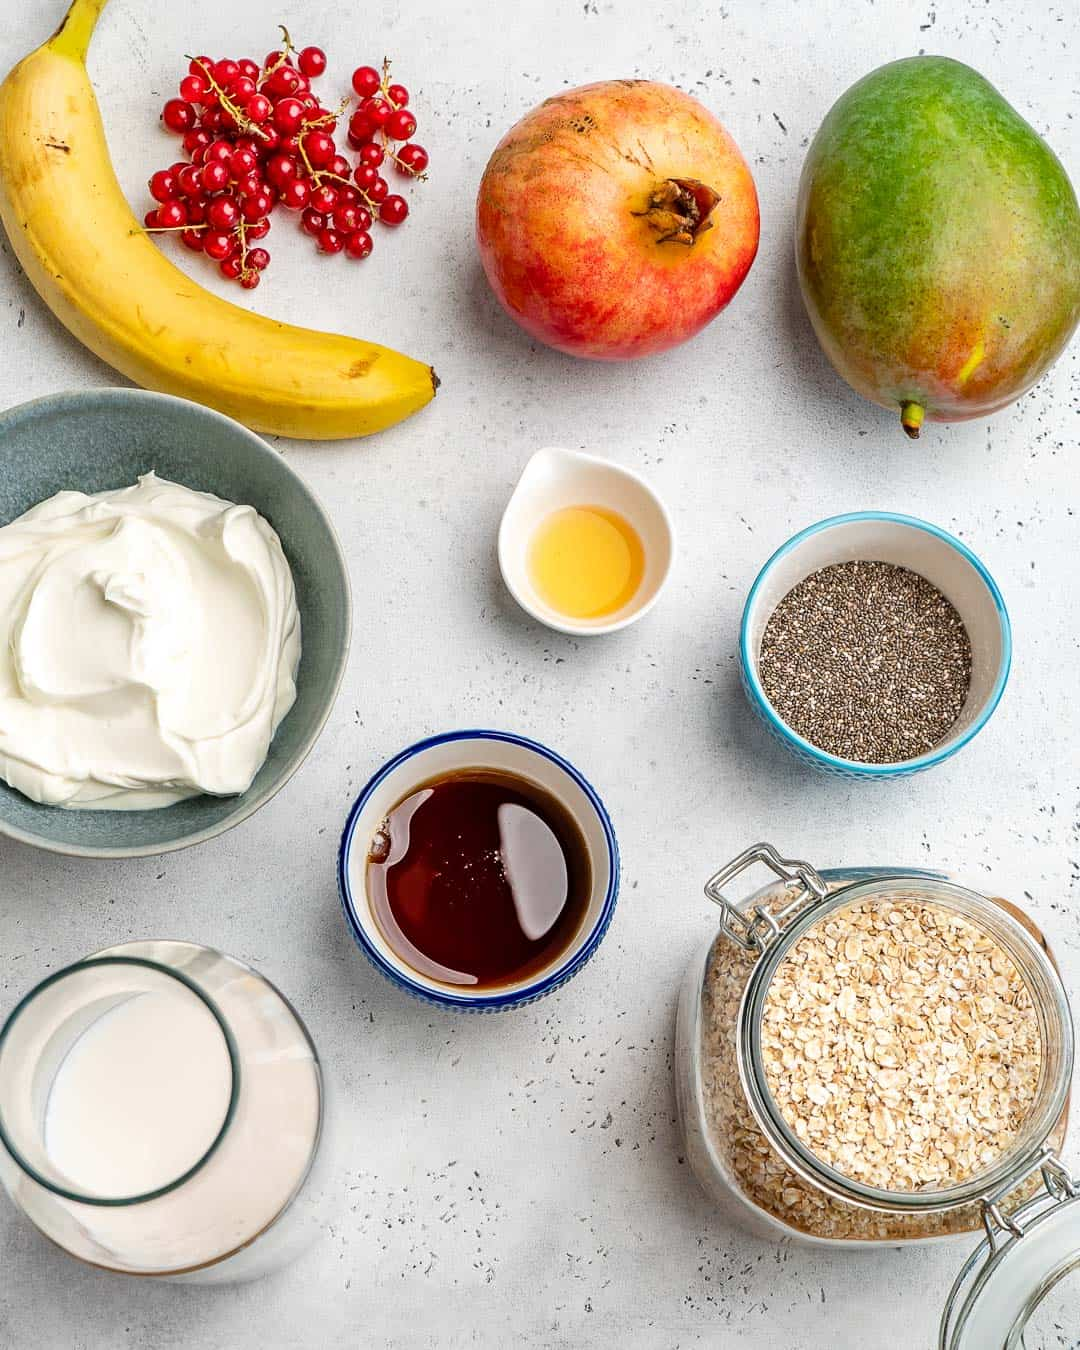 ingredients for Overnight Oats